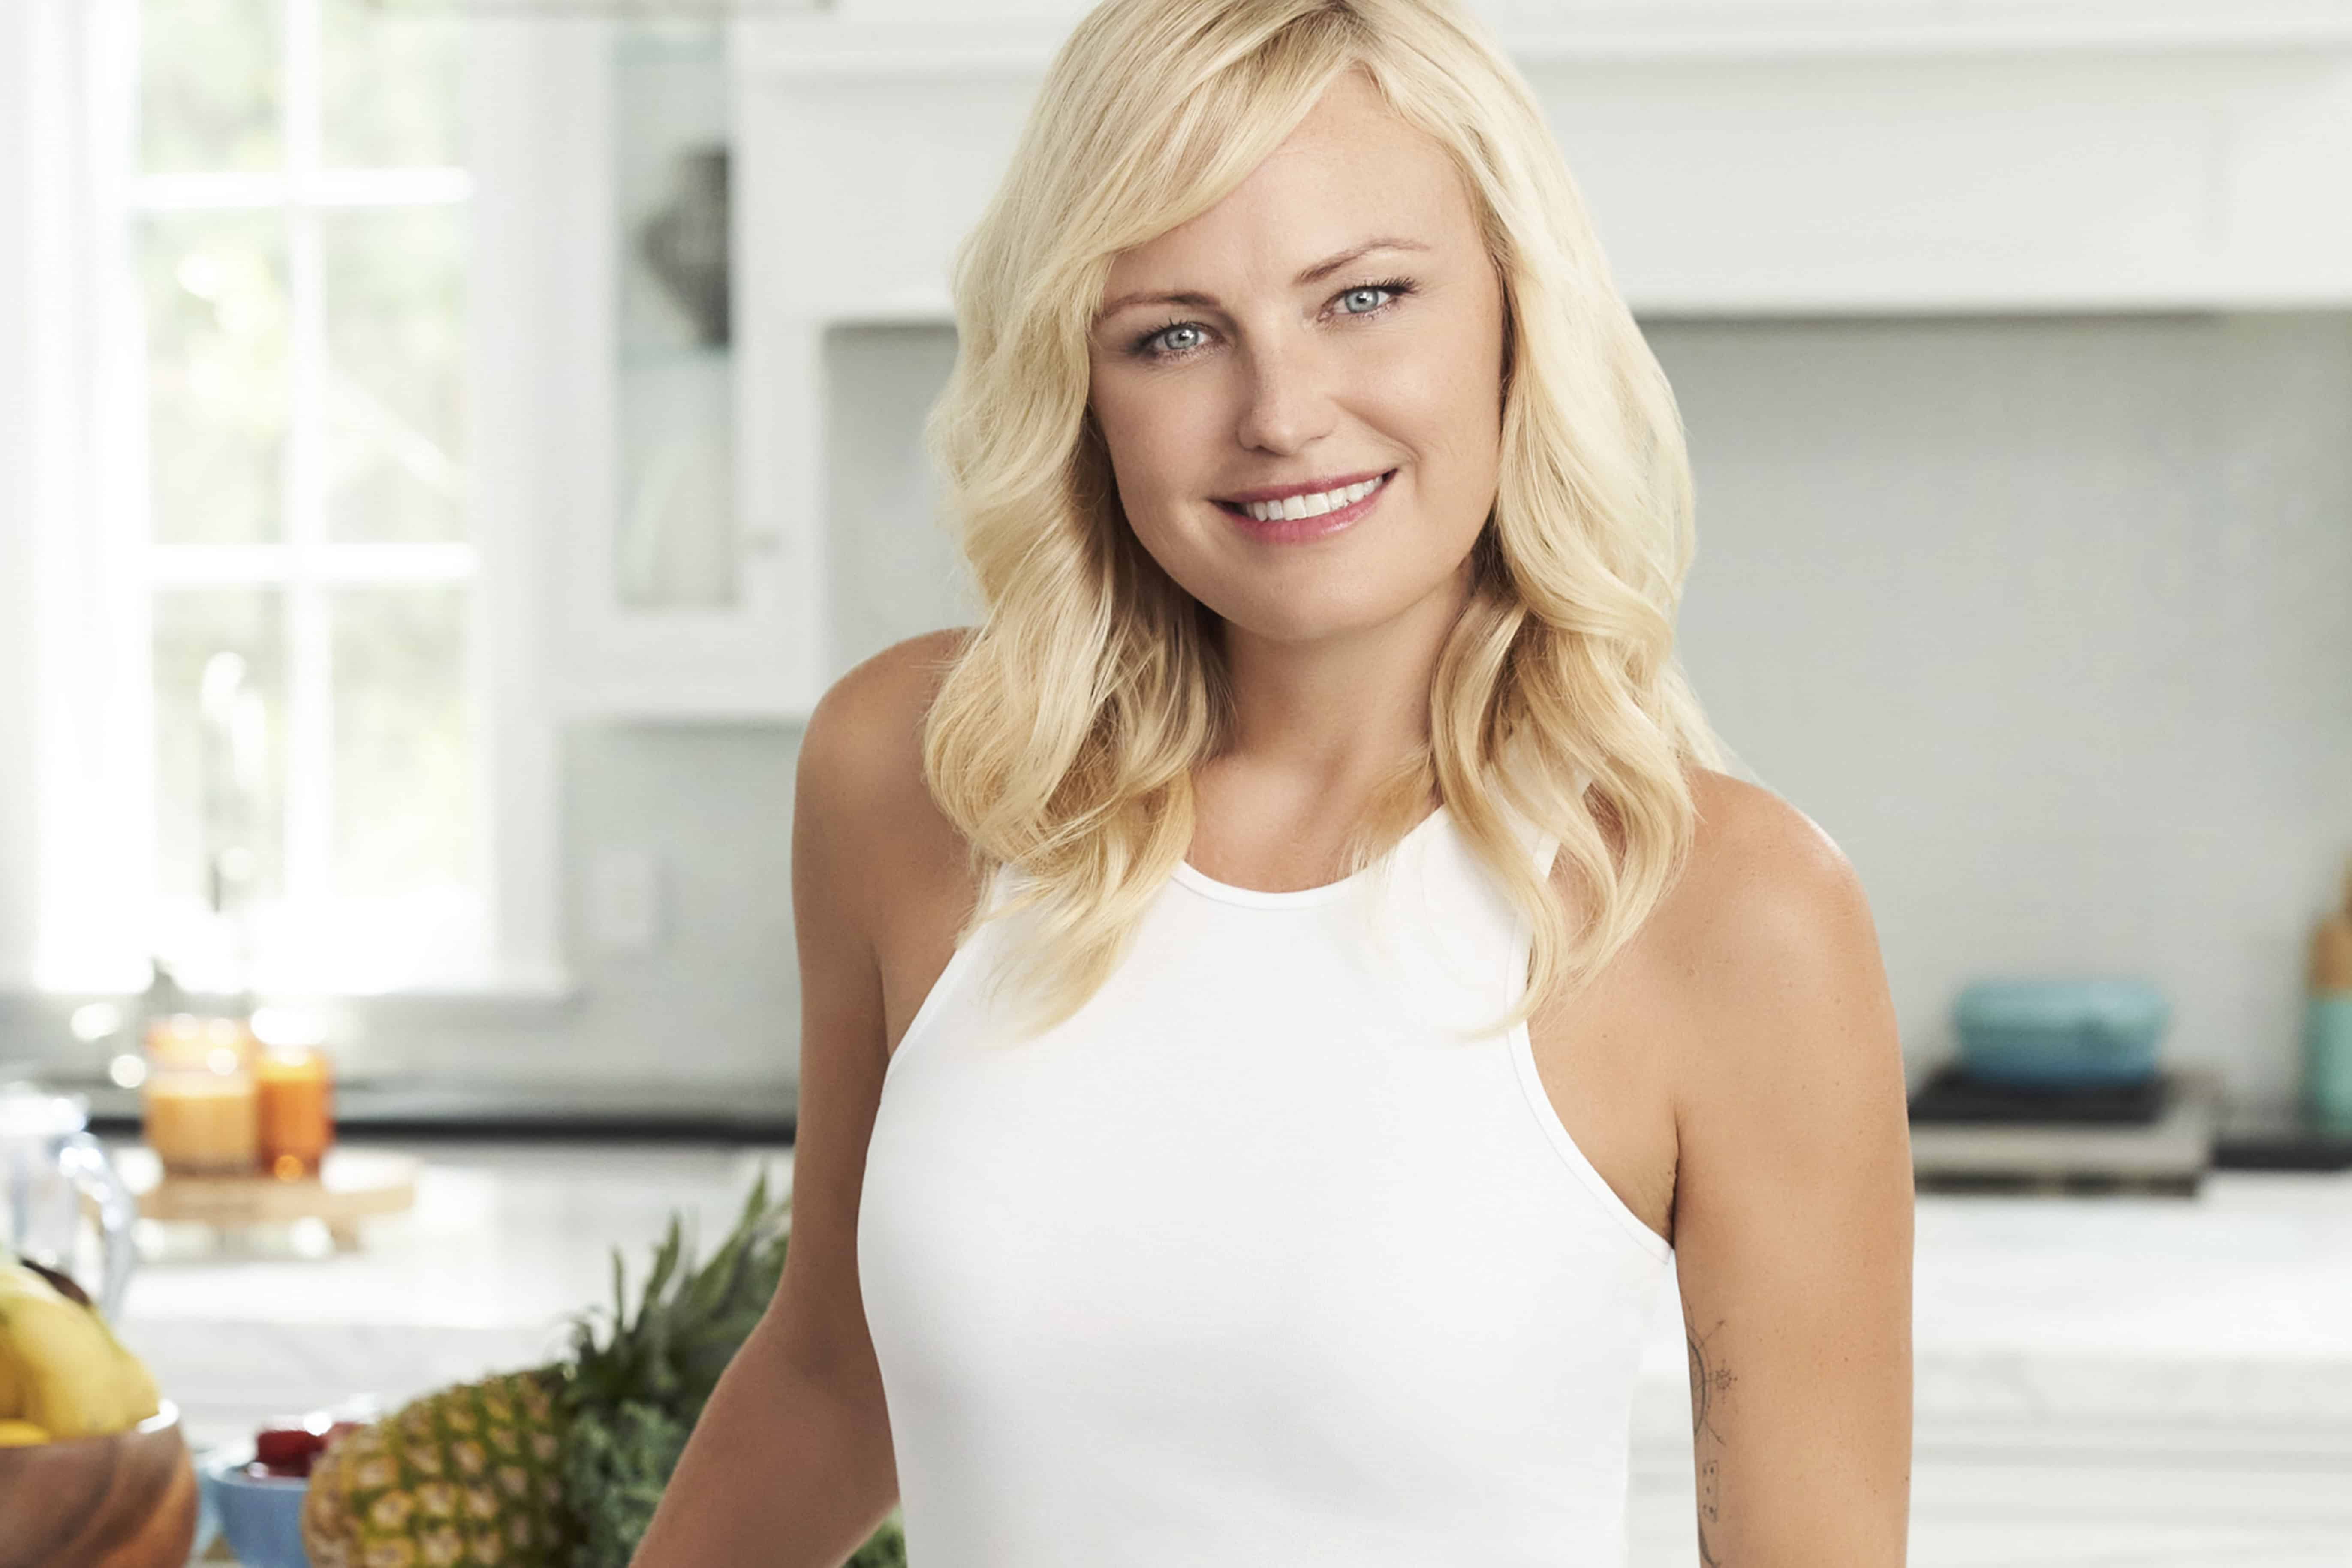 We chatted with Malin Akerman about why she loves fat-freezing and muscle-toning treatments, the procedure she regrets, and her quarantine beauty routine.